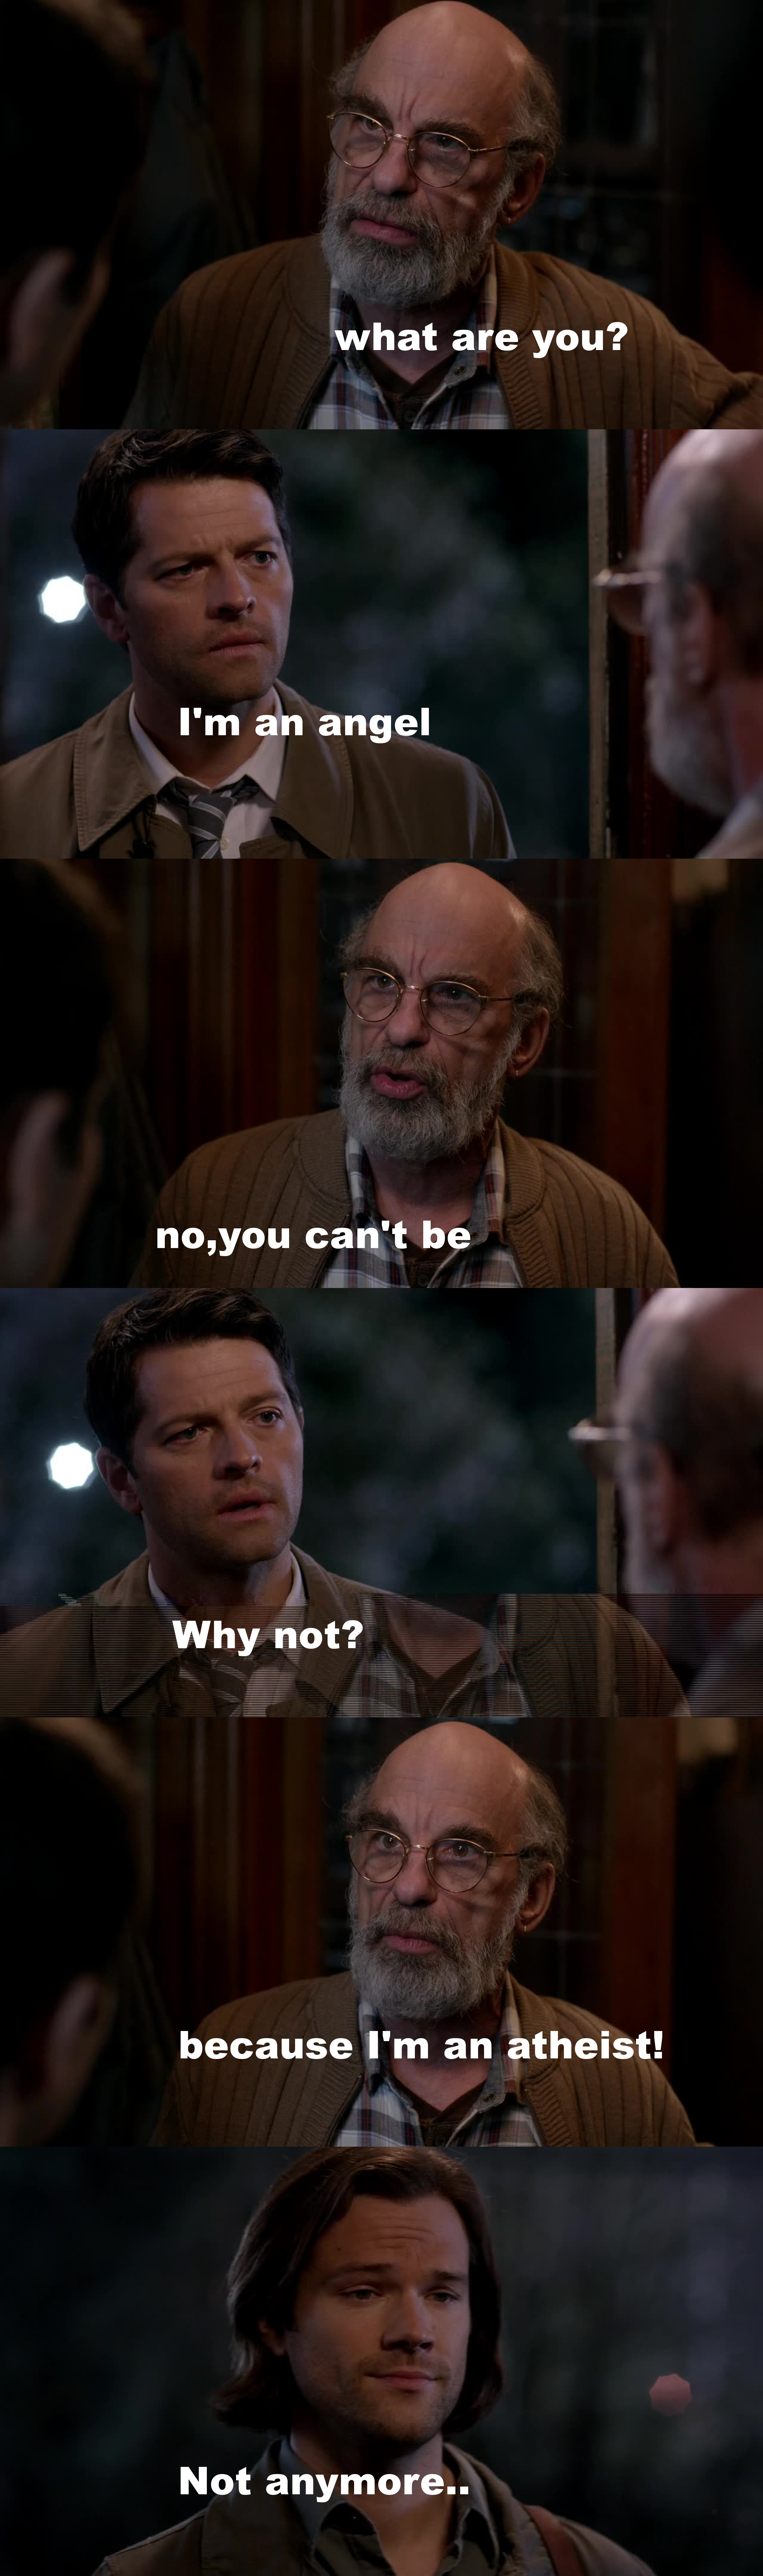 best line ever!!!!!!